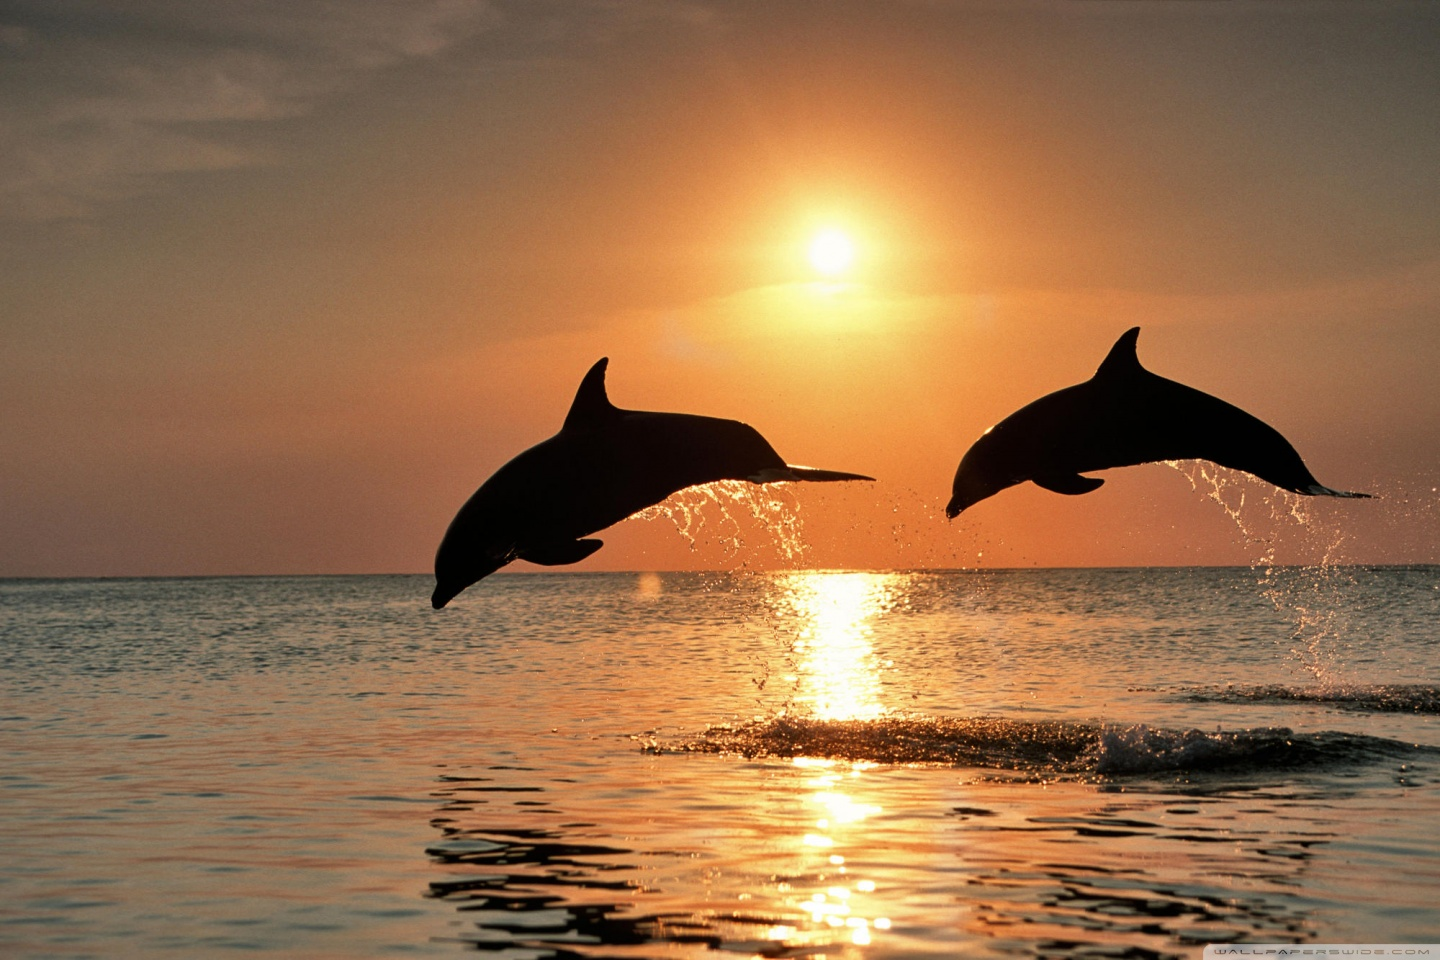 Download Bottlenose Dolphin Jumping At Sunset wallpaper 1440x960